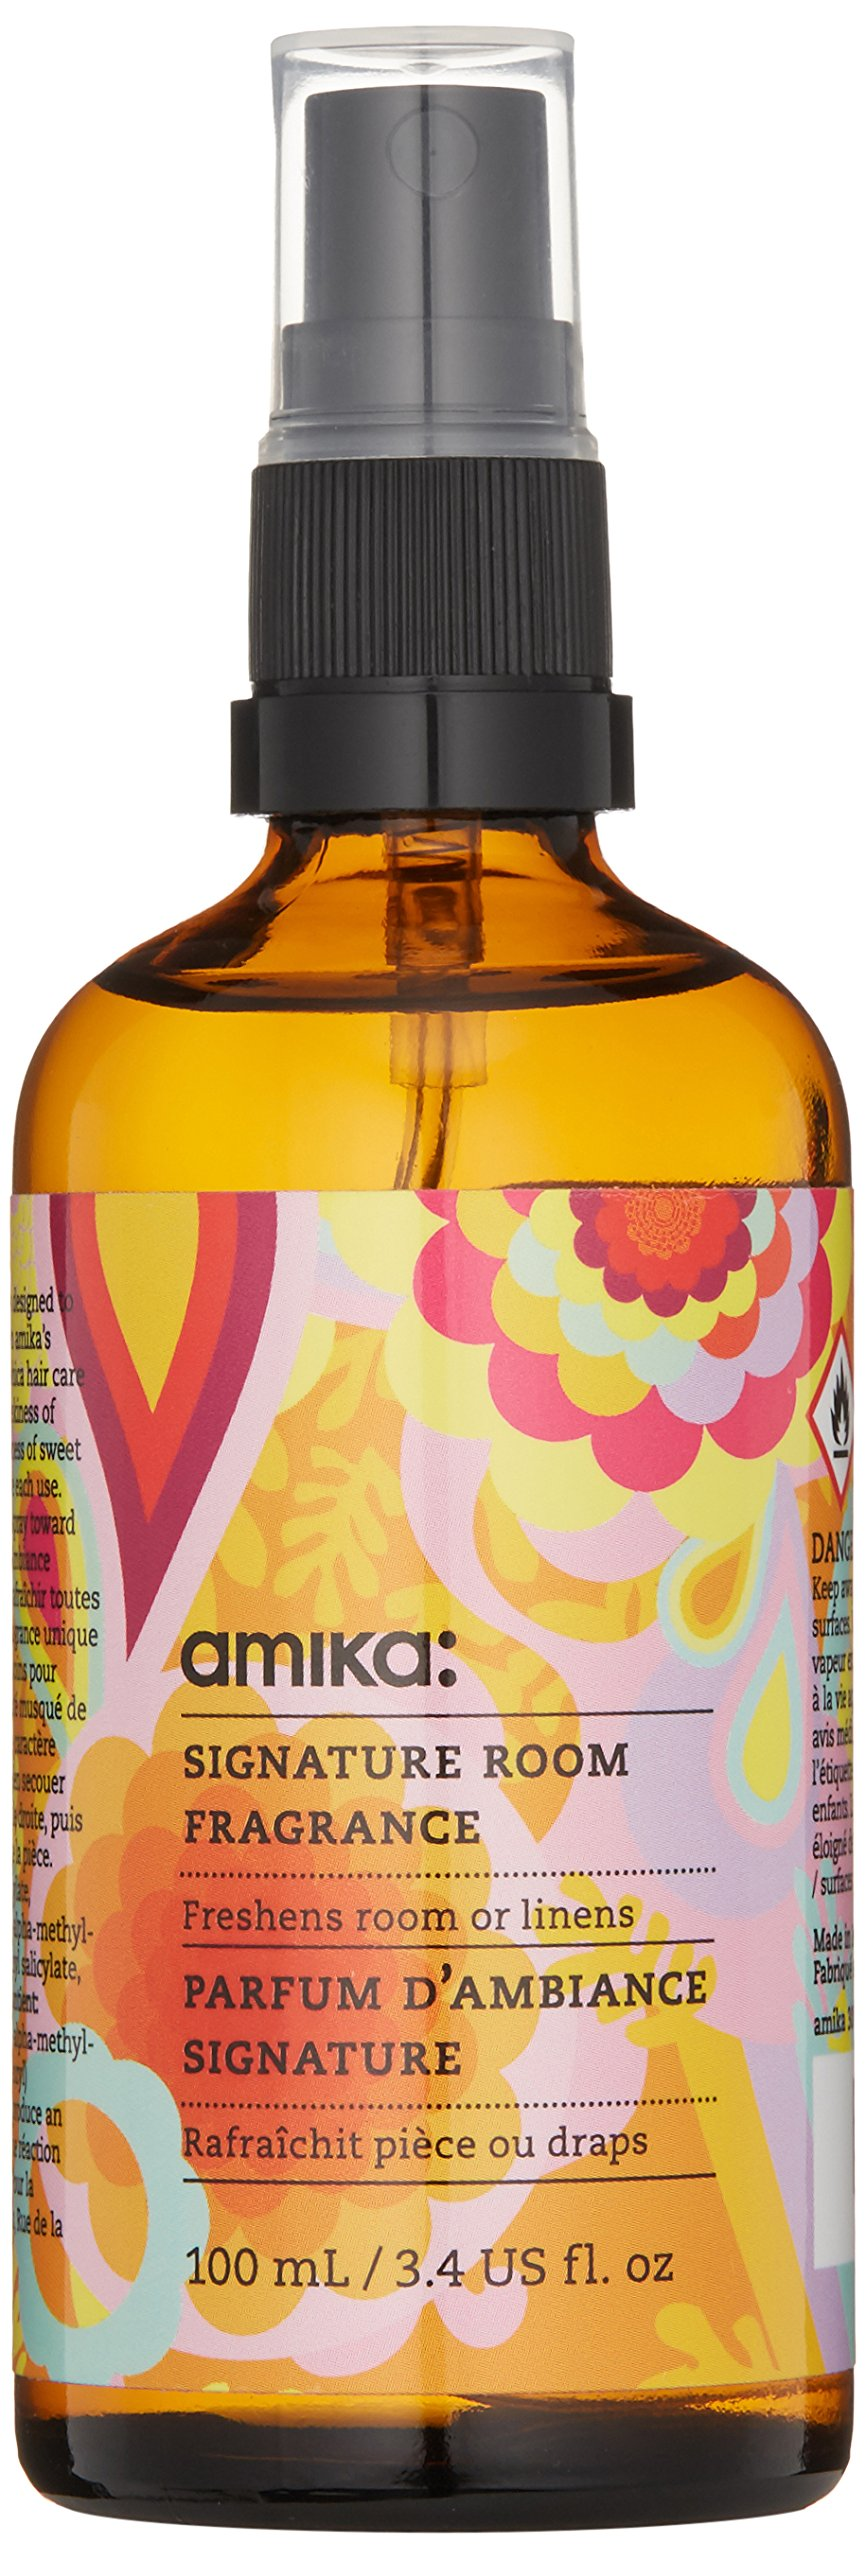 amika Signature Room Fragrance, 3.4 fl. oz.